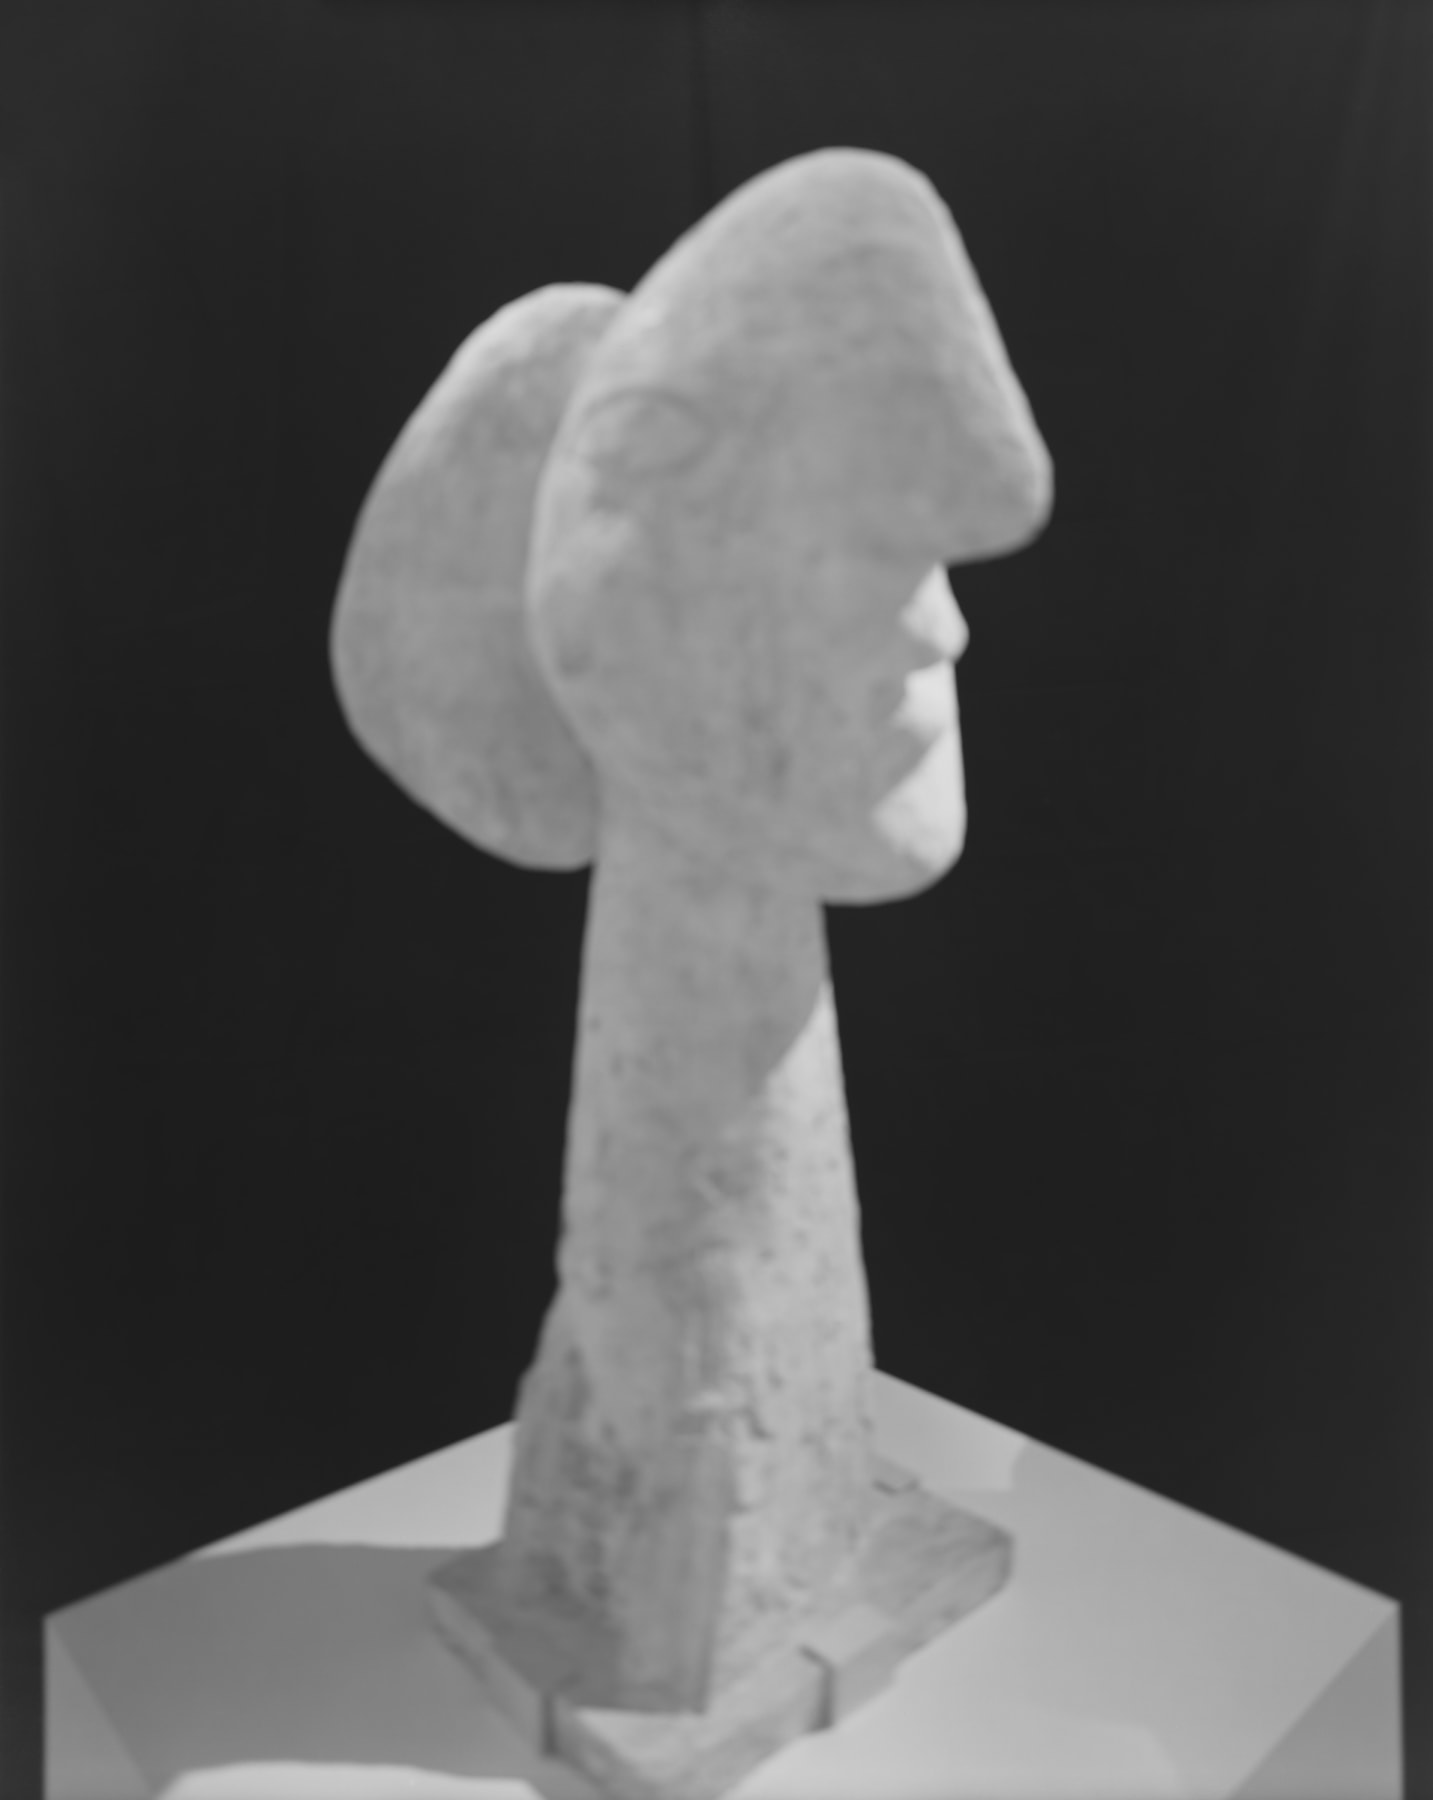 Hiroshi Sugimoto, Past Presence 026, Head of a Woman, Pablo Picasso, 2014